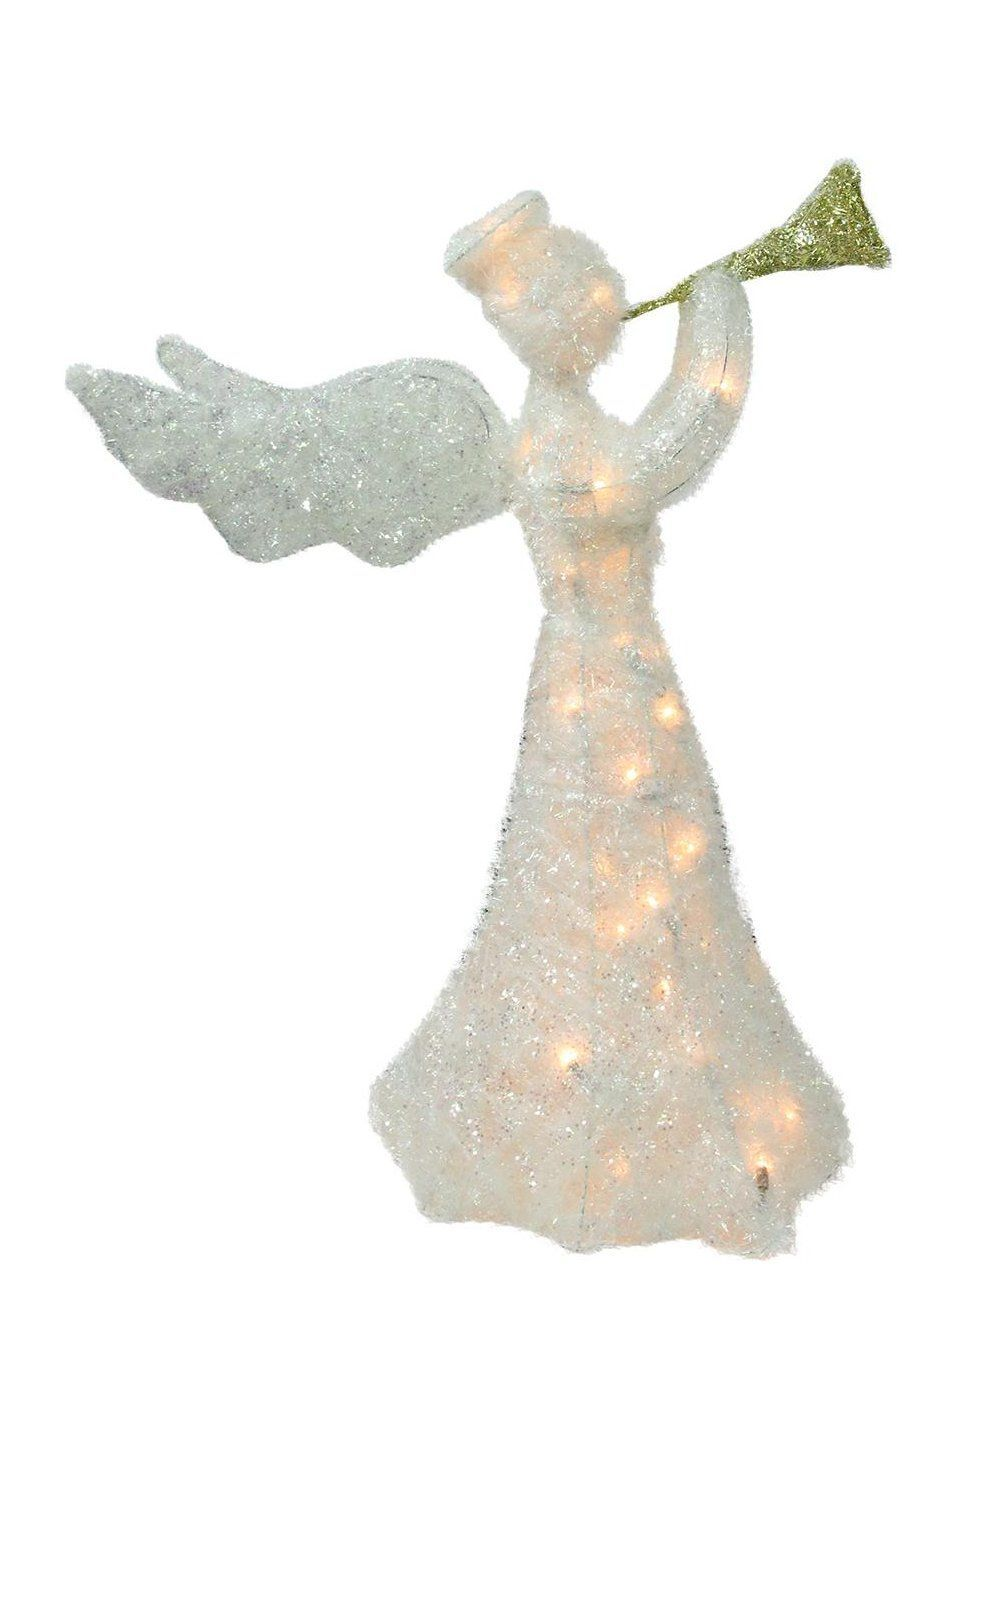 lighted tinsel trumpeting angel outside christmas decoration buy christmas angel yard decorations here silver tinsel